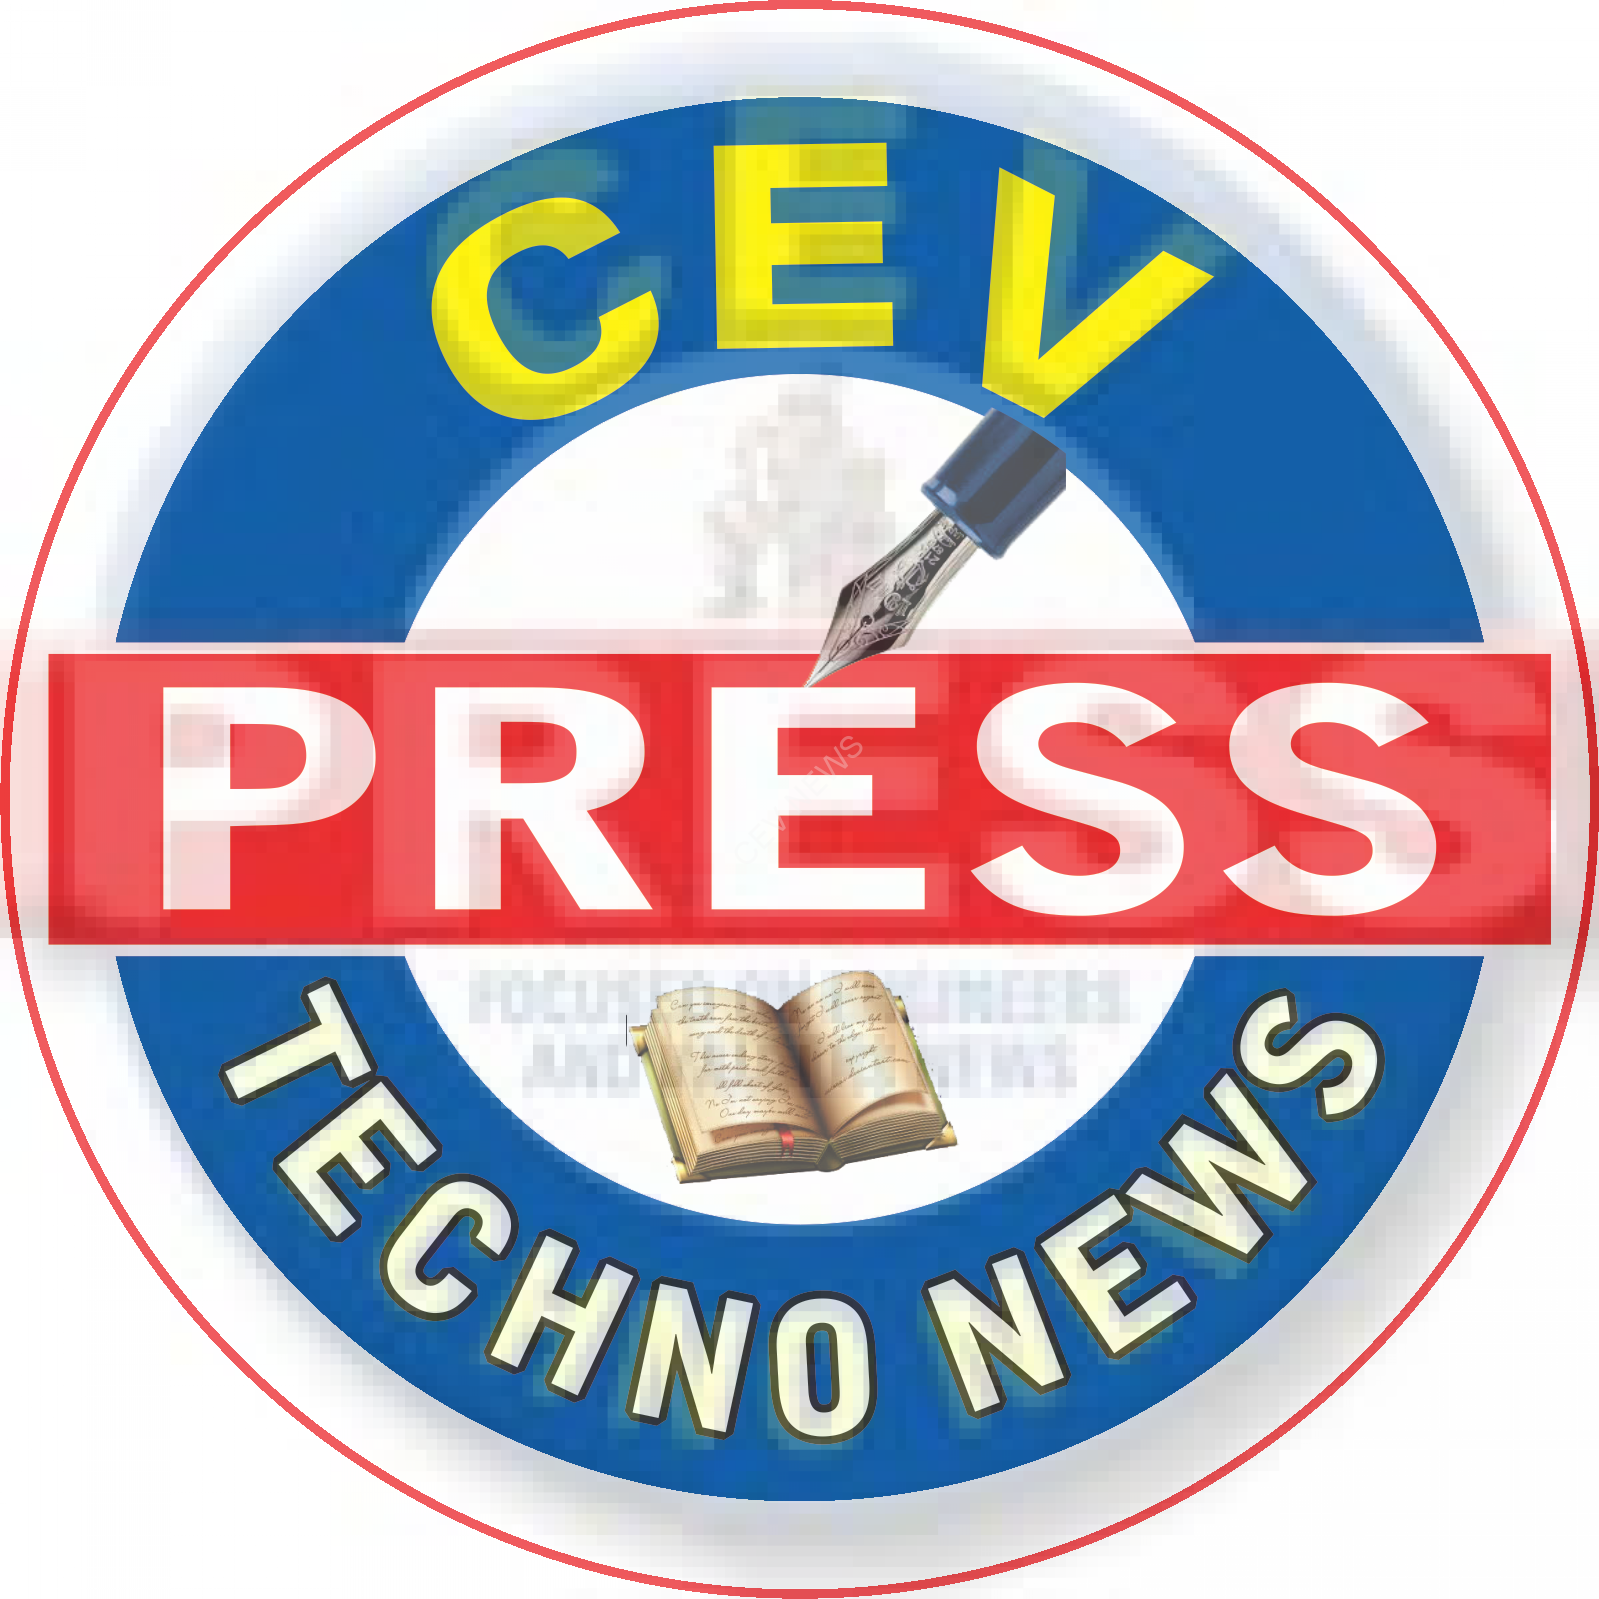 CEV NEWS HAS CREATED ANDROID APP TO FACILILITATE ITS SUBSCRIBERS.